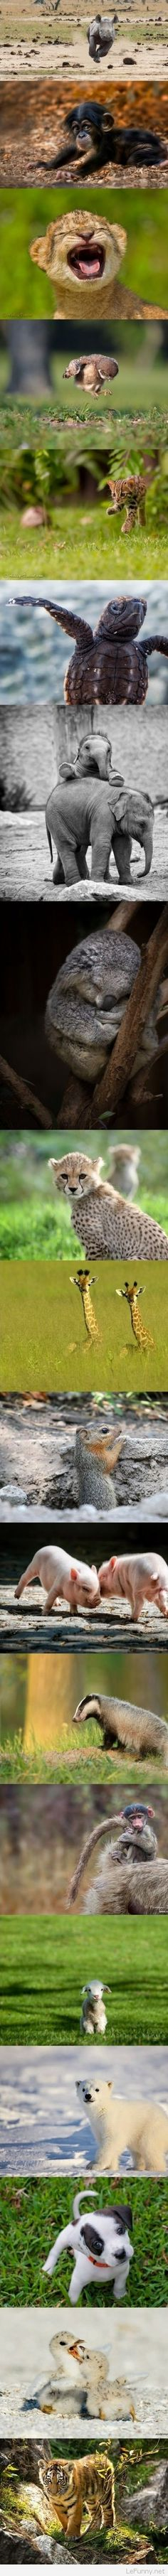 Funny baby animals spotted in the wild | Funny Pictures | Funny Quotes | Funny Jokes – Photos, Images, Pics